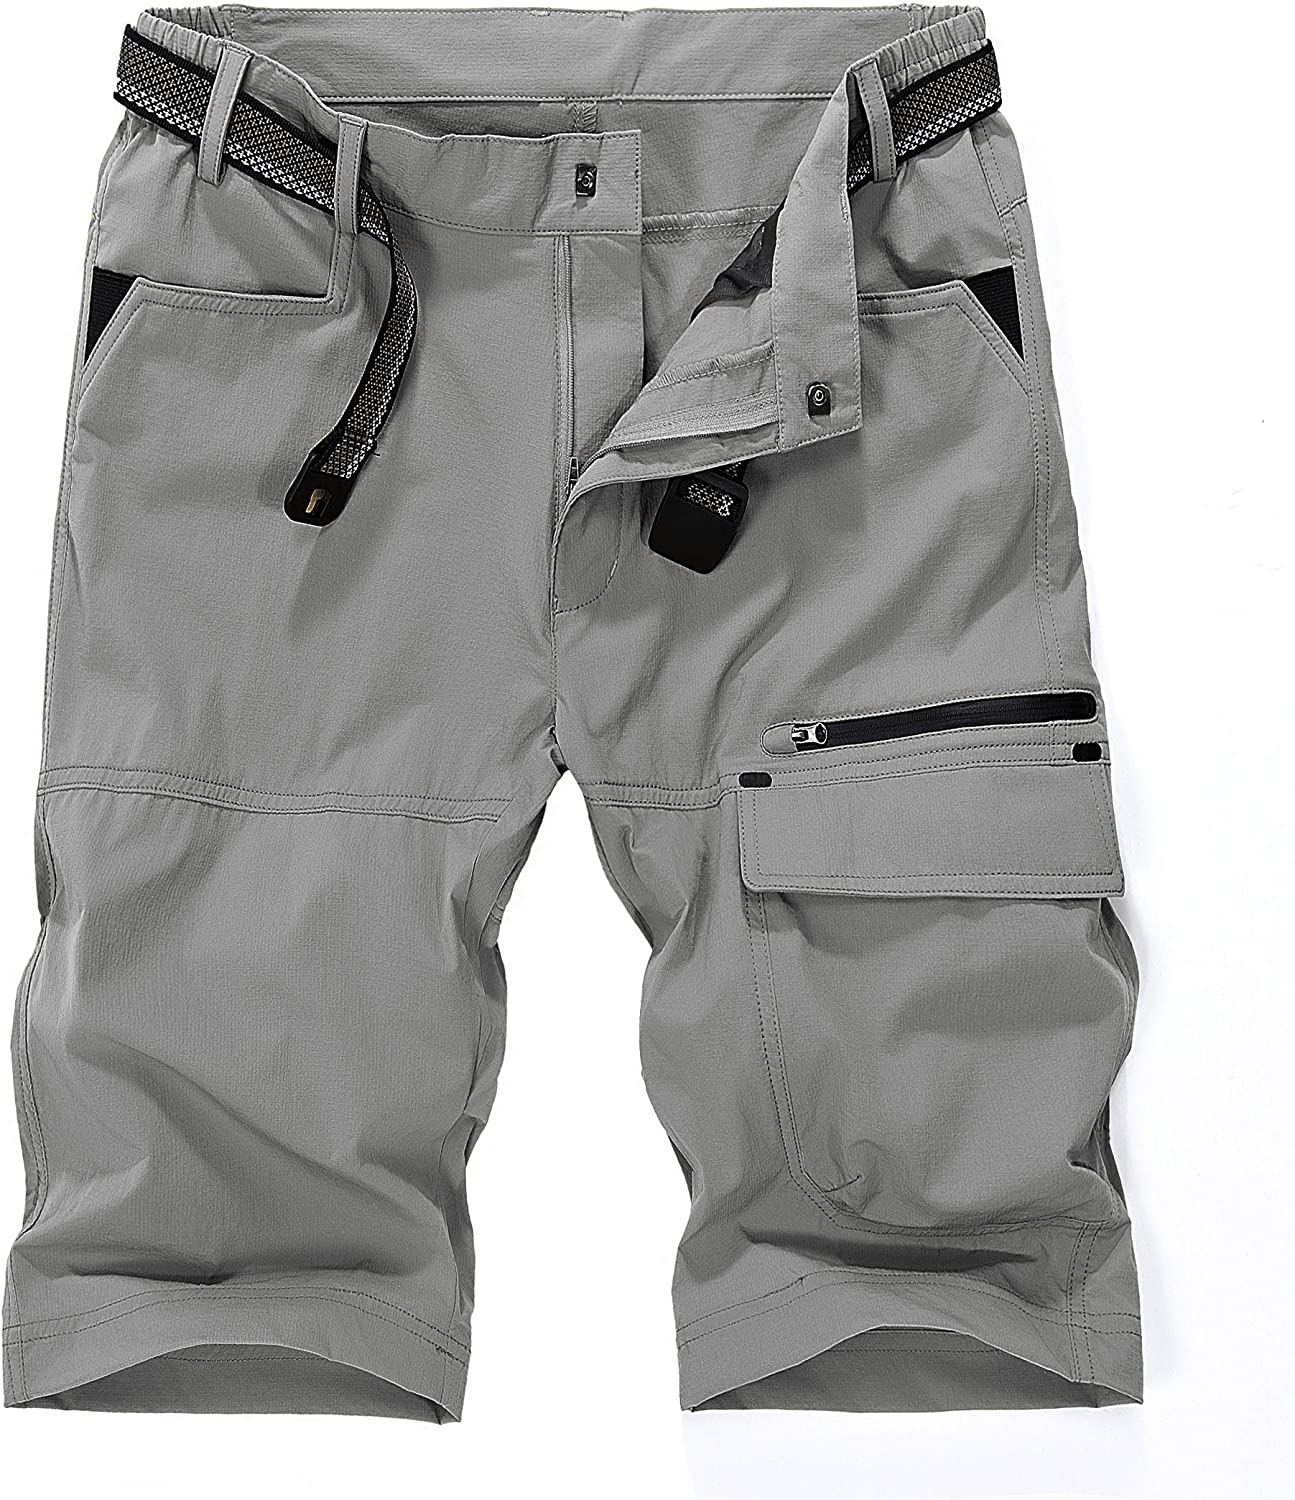 MAGCOMSEN Men's Shorts Cargo Work Hiking Tactical Shorts with 5 Pockets Quick Dry, Sun Protection, Tear Resistant